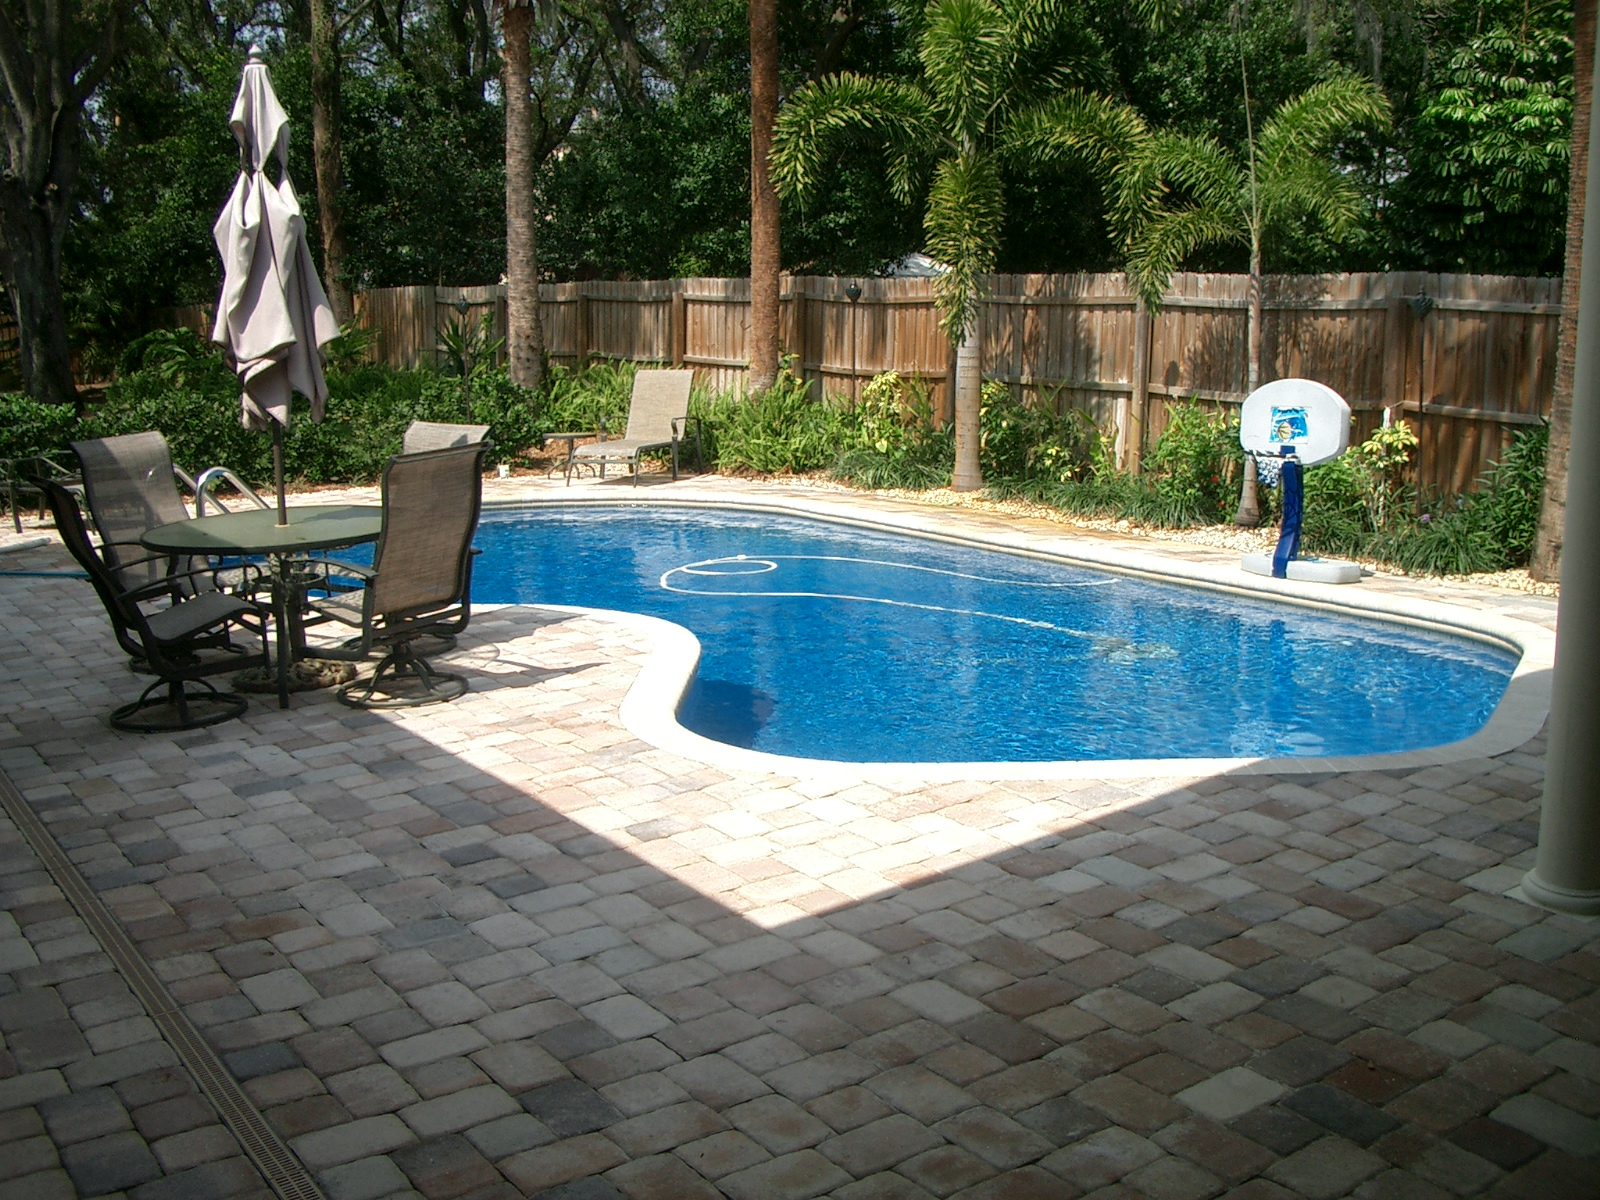 Mini Inground Swimming Pool | Backyard Pool Designs | Small Backyard Pools Designs